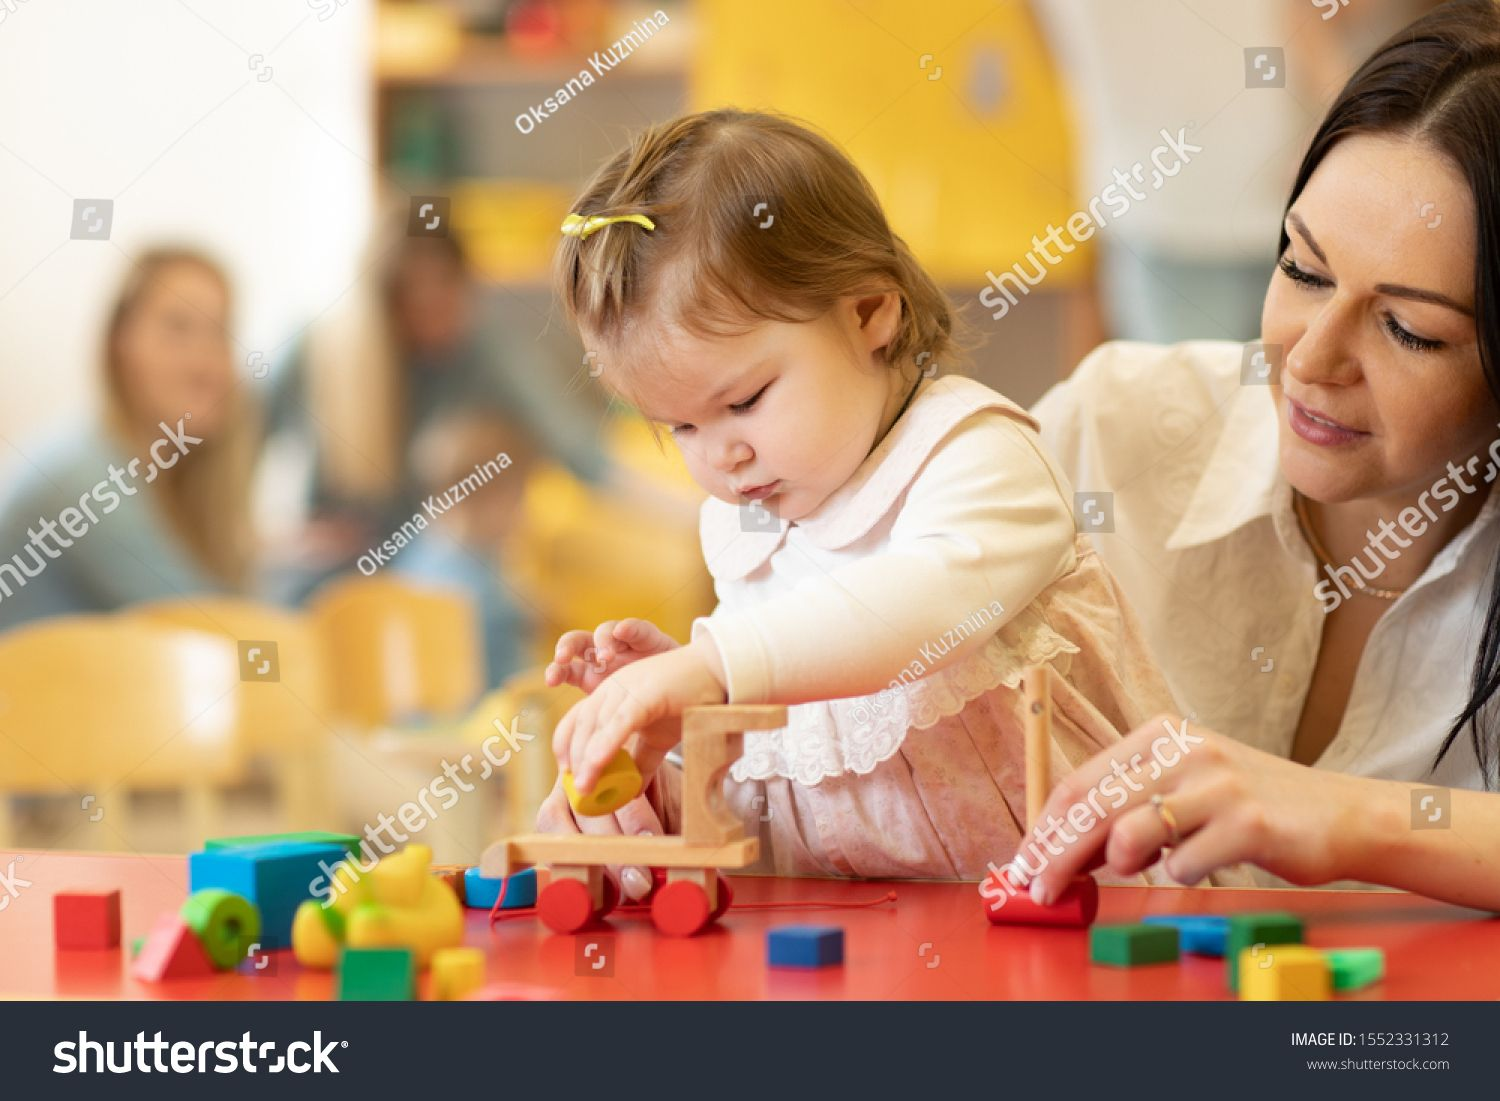 Child Building Blocks With A Teacher In The Nursery Ad Affiliate Building Child Blocks Nursery Building Blocks Nursery Children